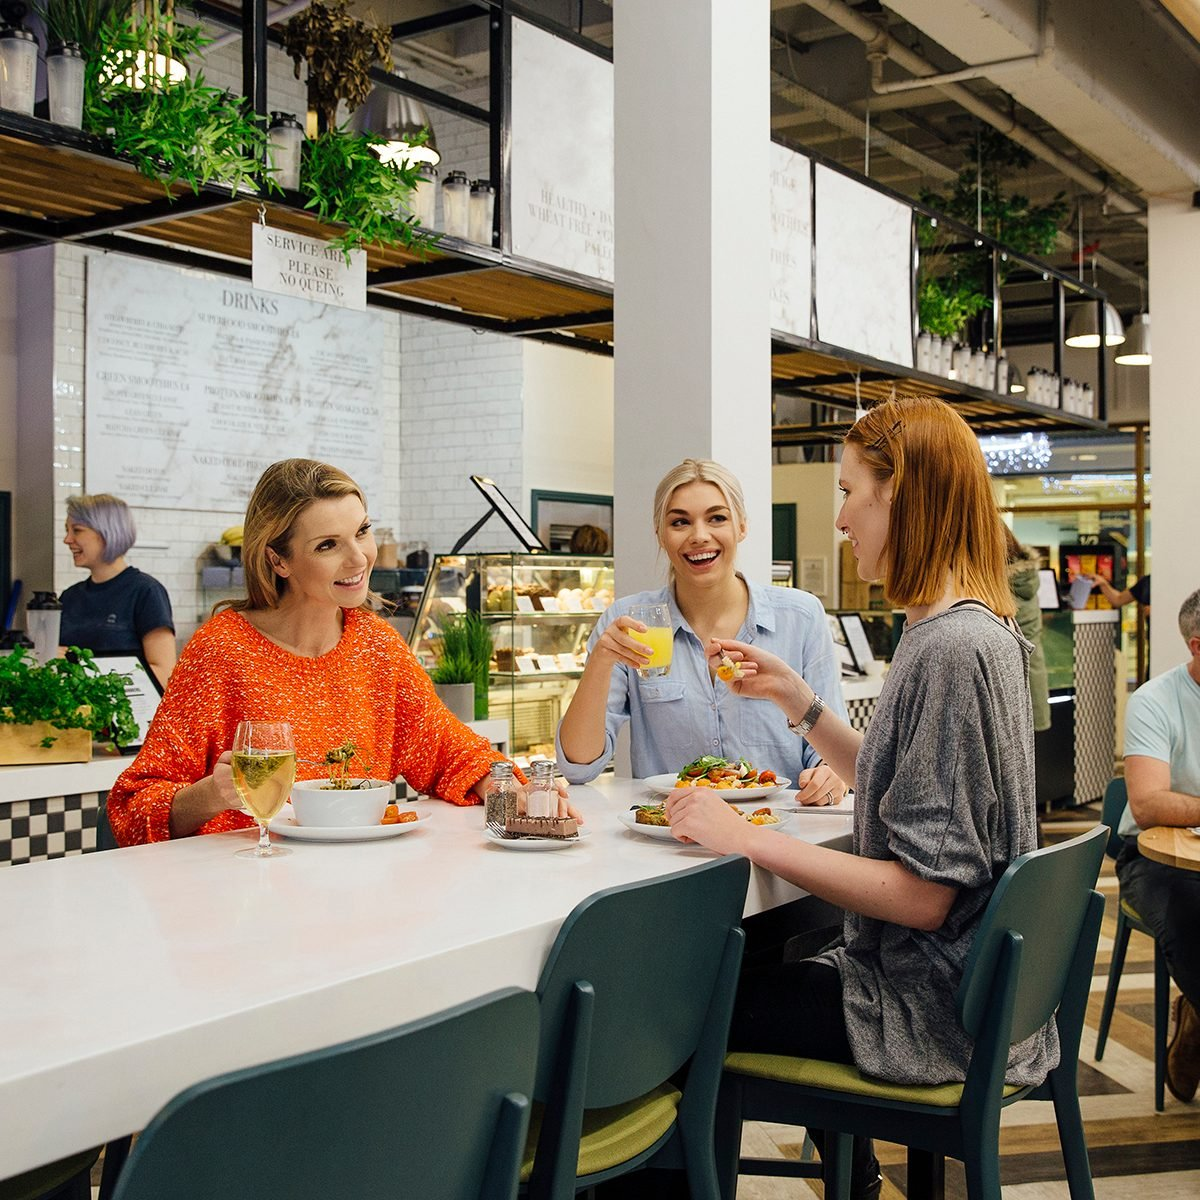 Three women are sitting at a table in a health cafe. They are eating organic, vegan meals while talking and laughing.